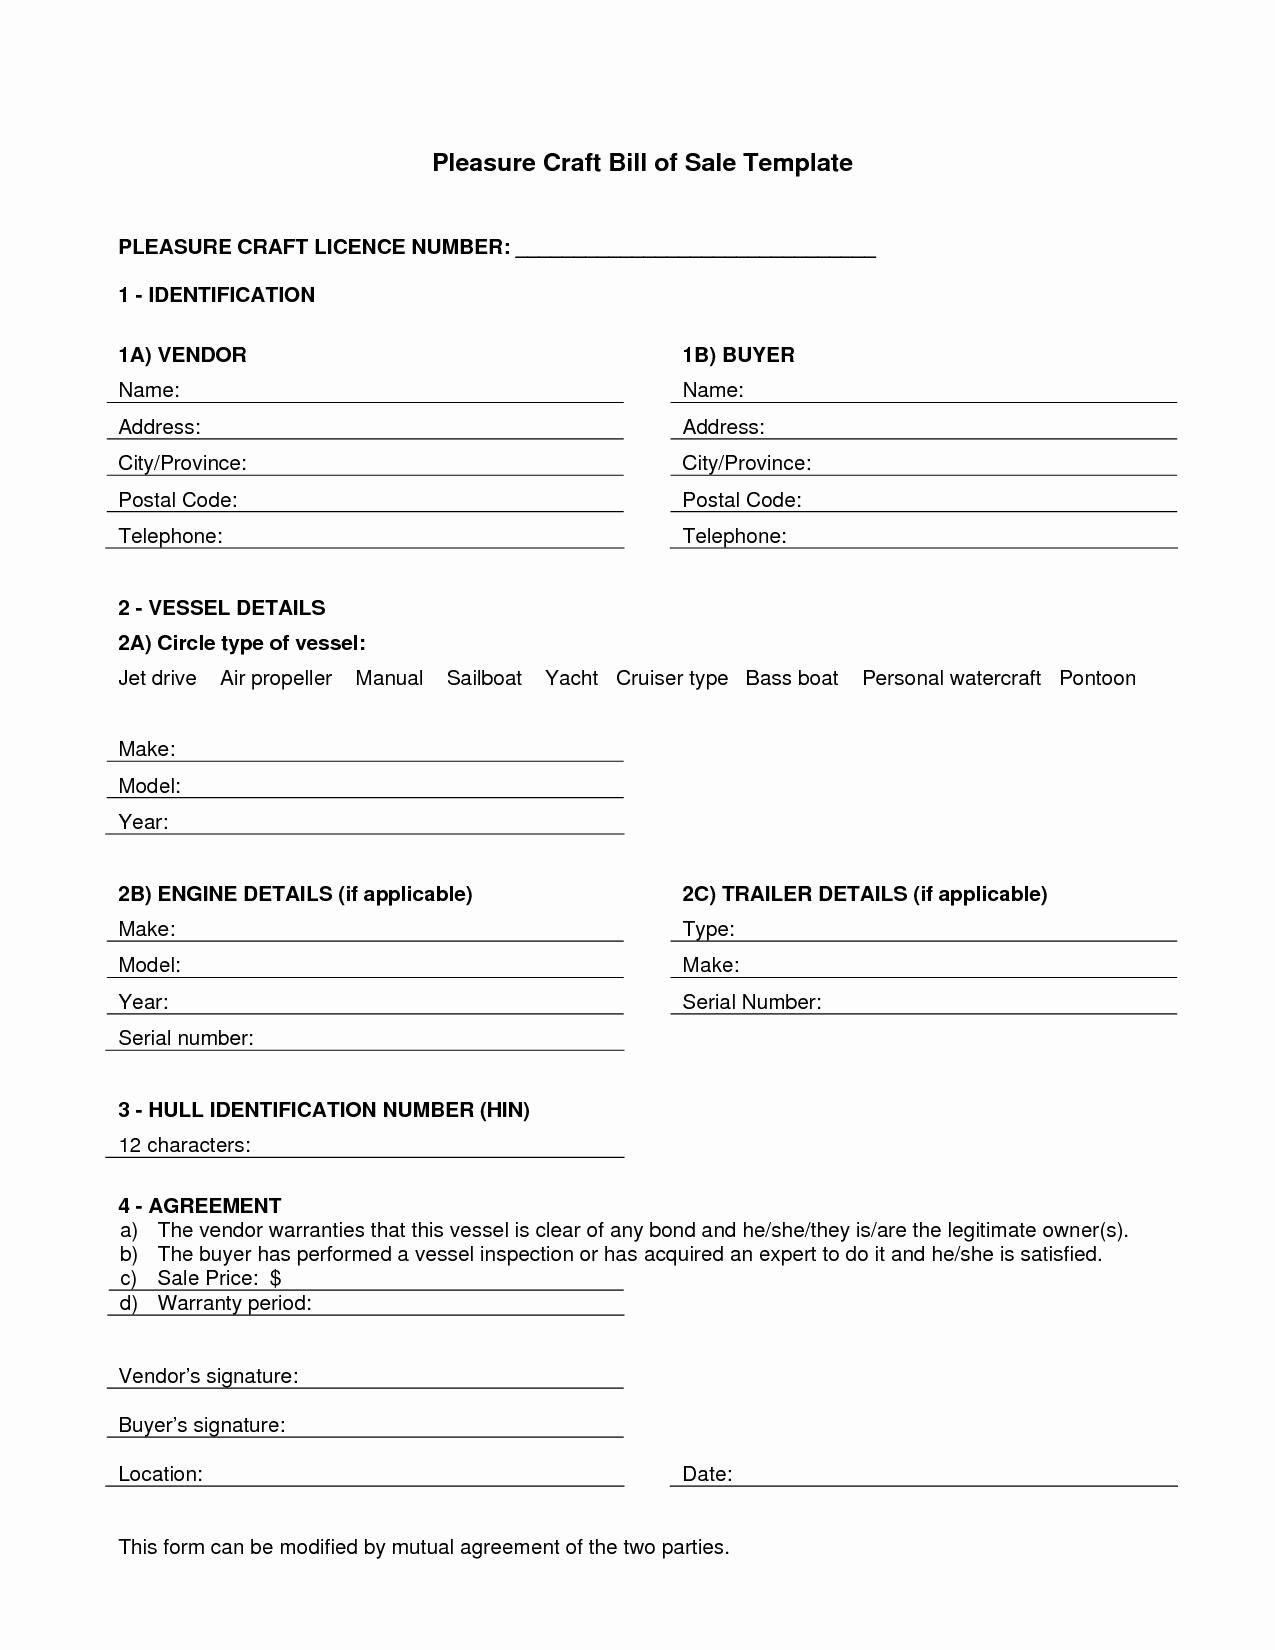 Business Bill Of Sale Example Best Of 45 Fee Printable Bill Sale Templates Car Boat Gun